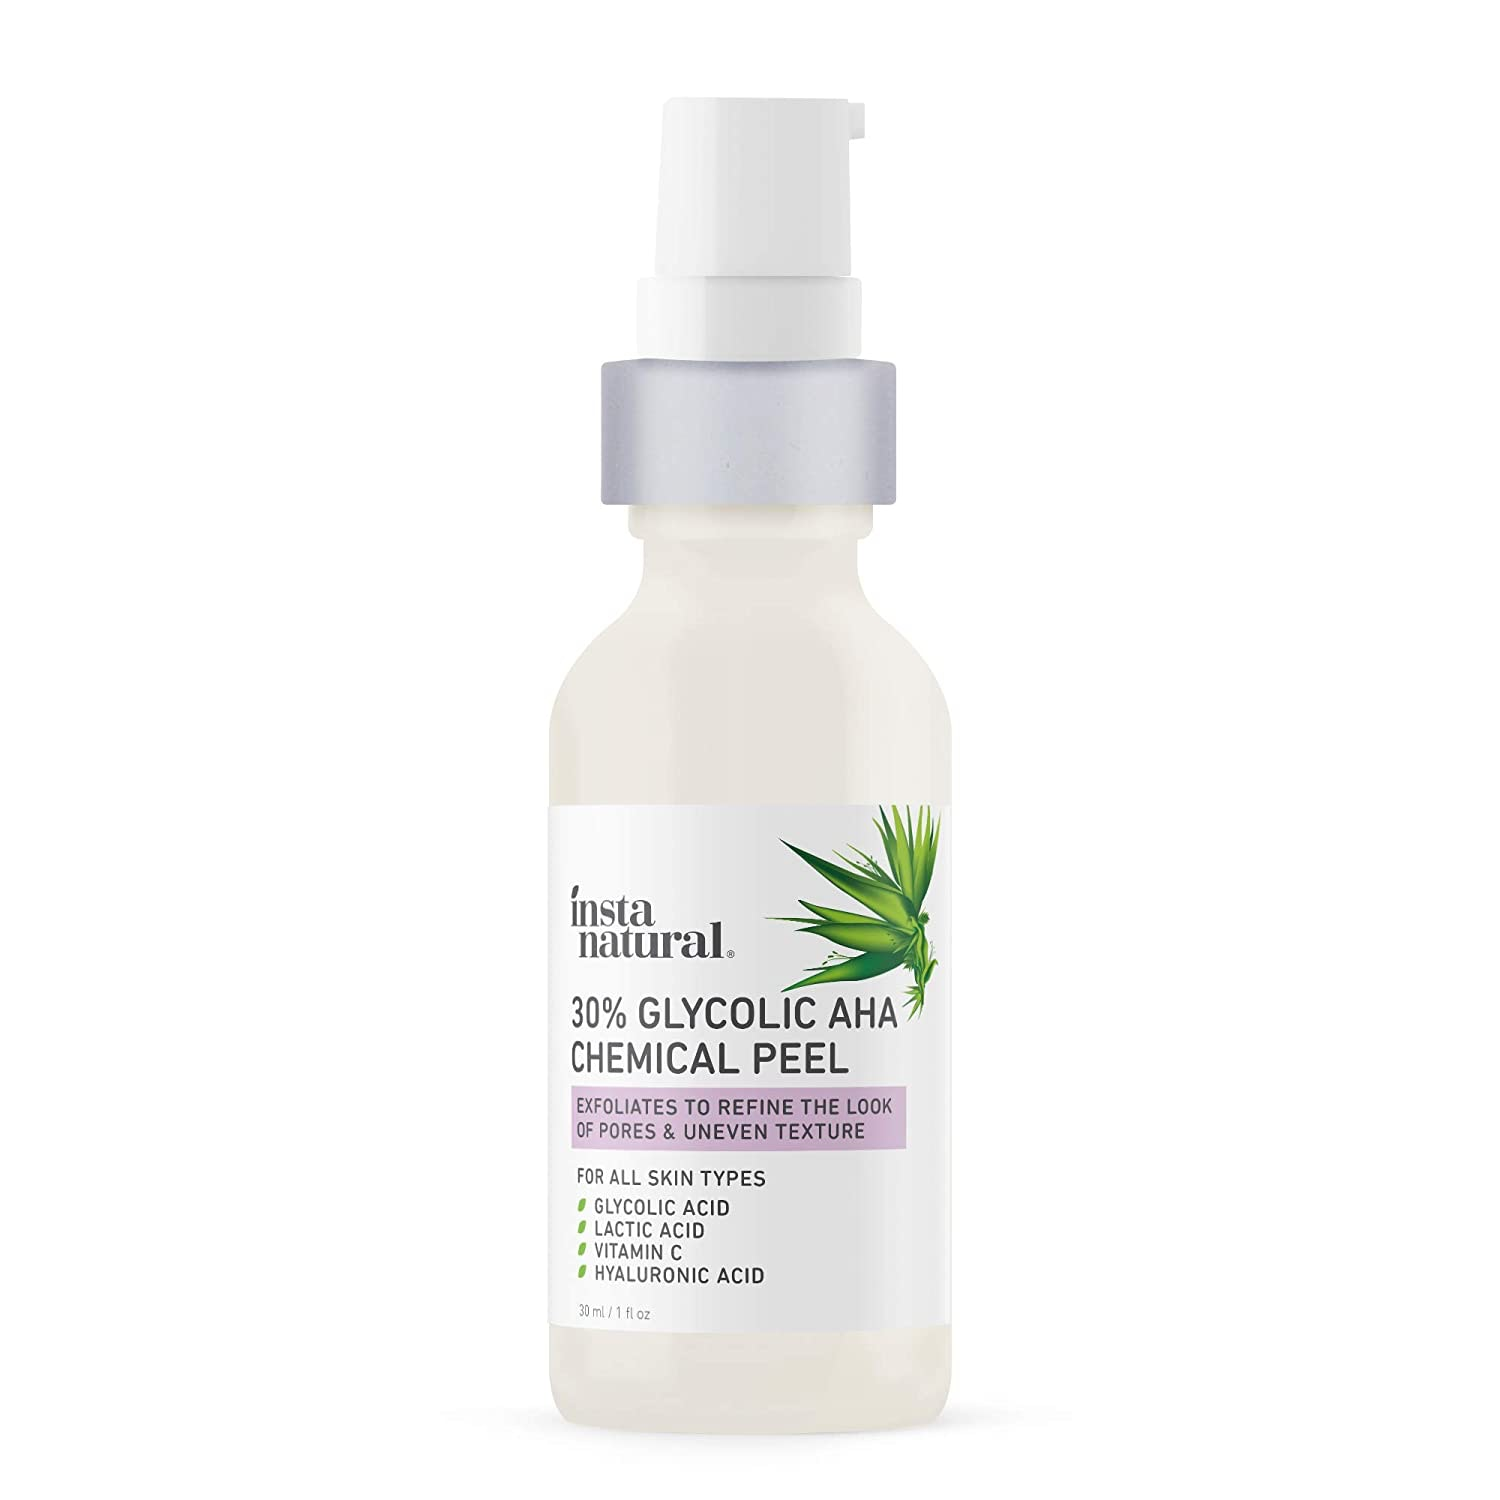 InstaNatural® 30% Glycolic AHA Chemical Peel